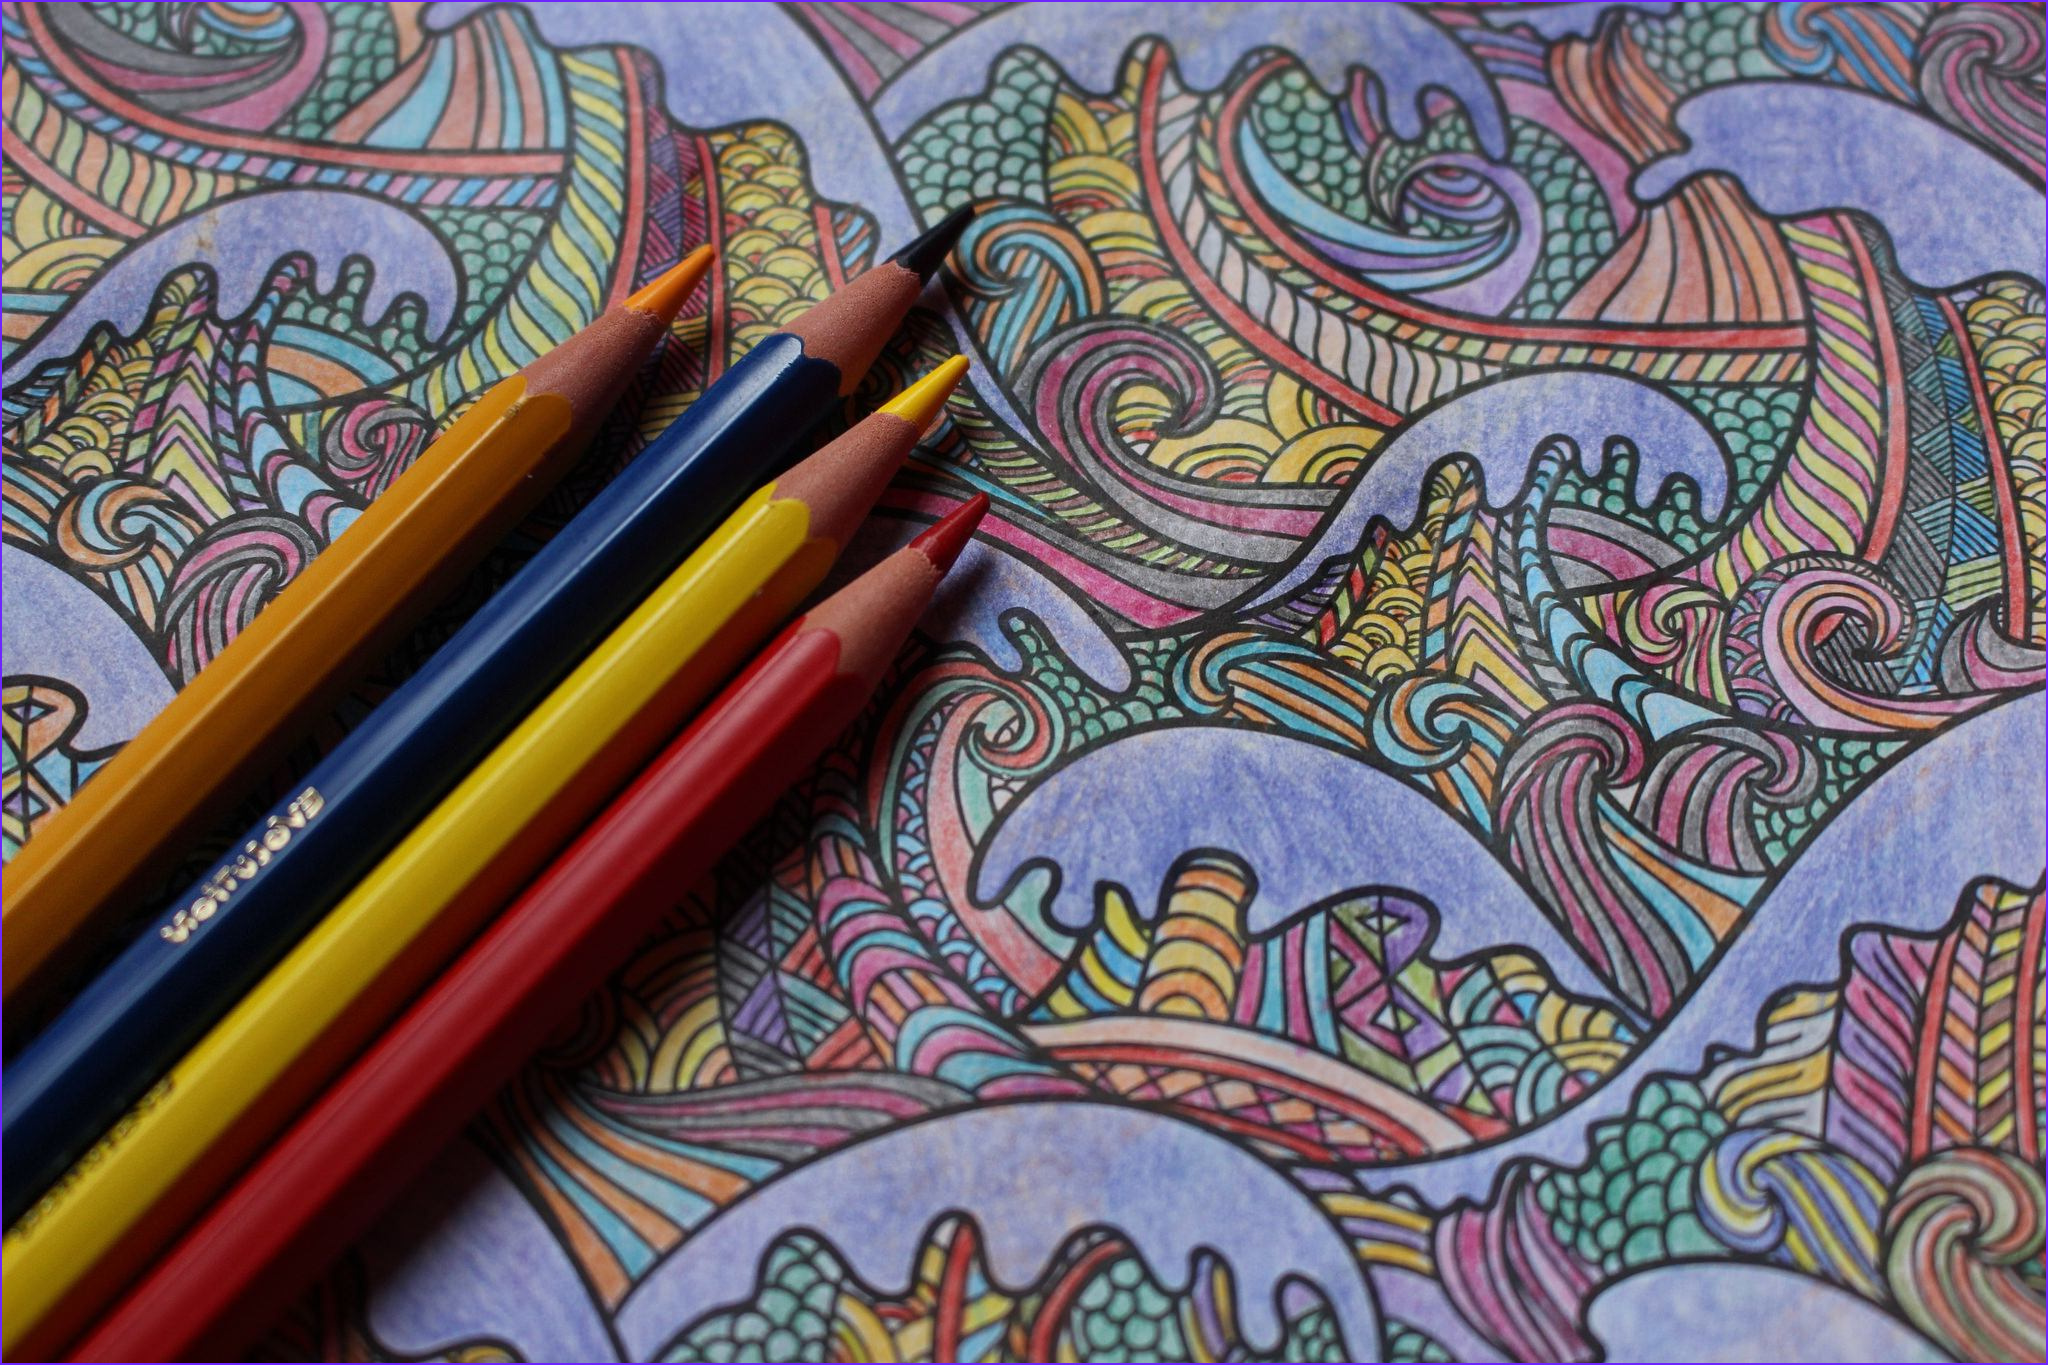 The Best Adult Coloring Book Awesome Gallery Coloring Books are Perfect Gifts for Stressed Out Adults